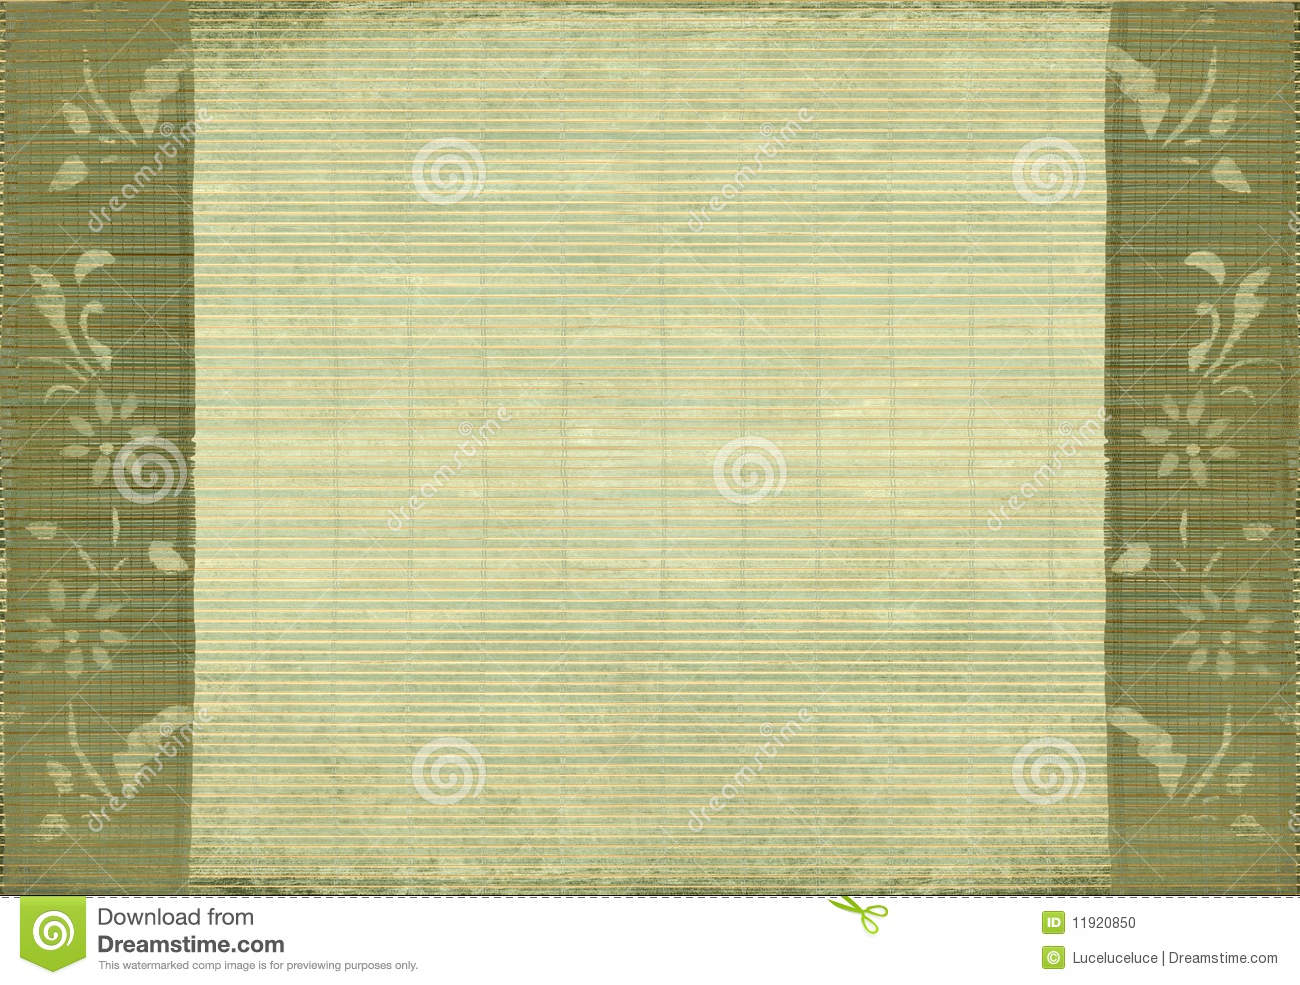 Flower and bamboo grunge sepia background